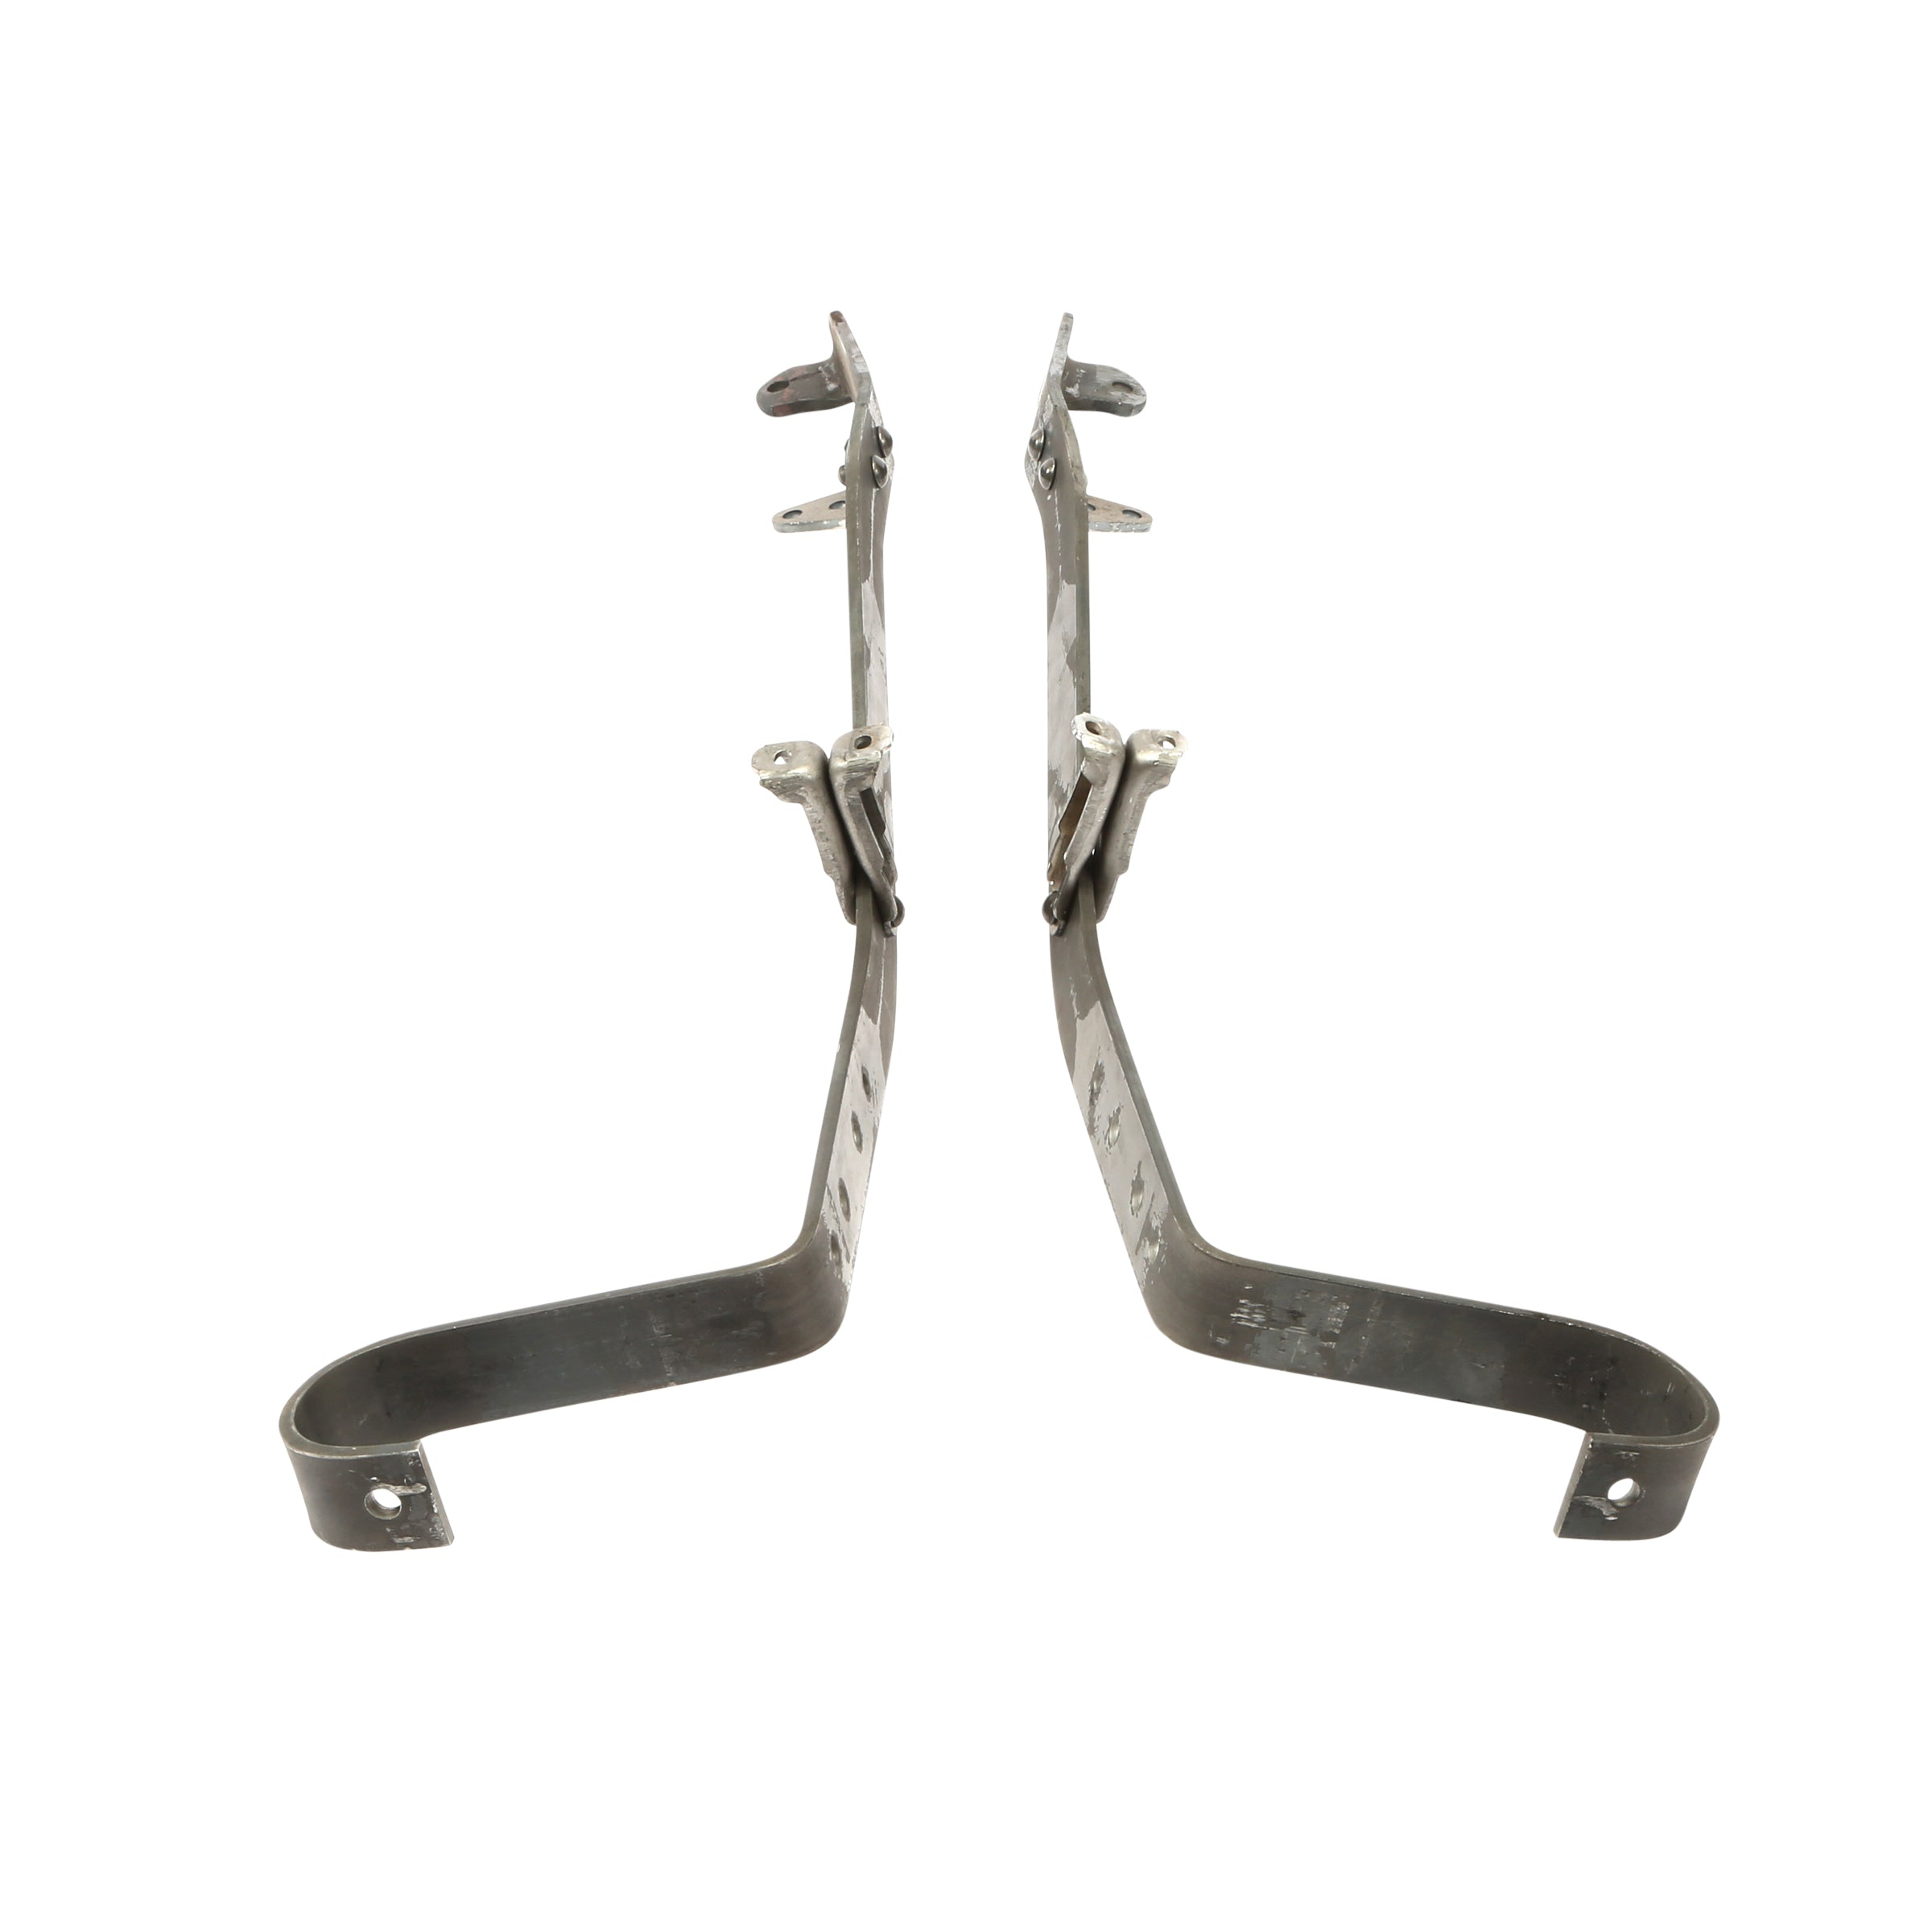 Rear Bumper Frame Brackets • 1928-31 Model A Ford